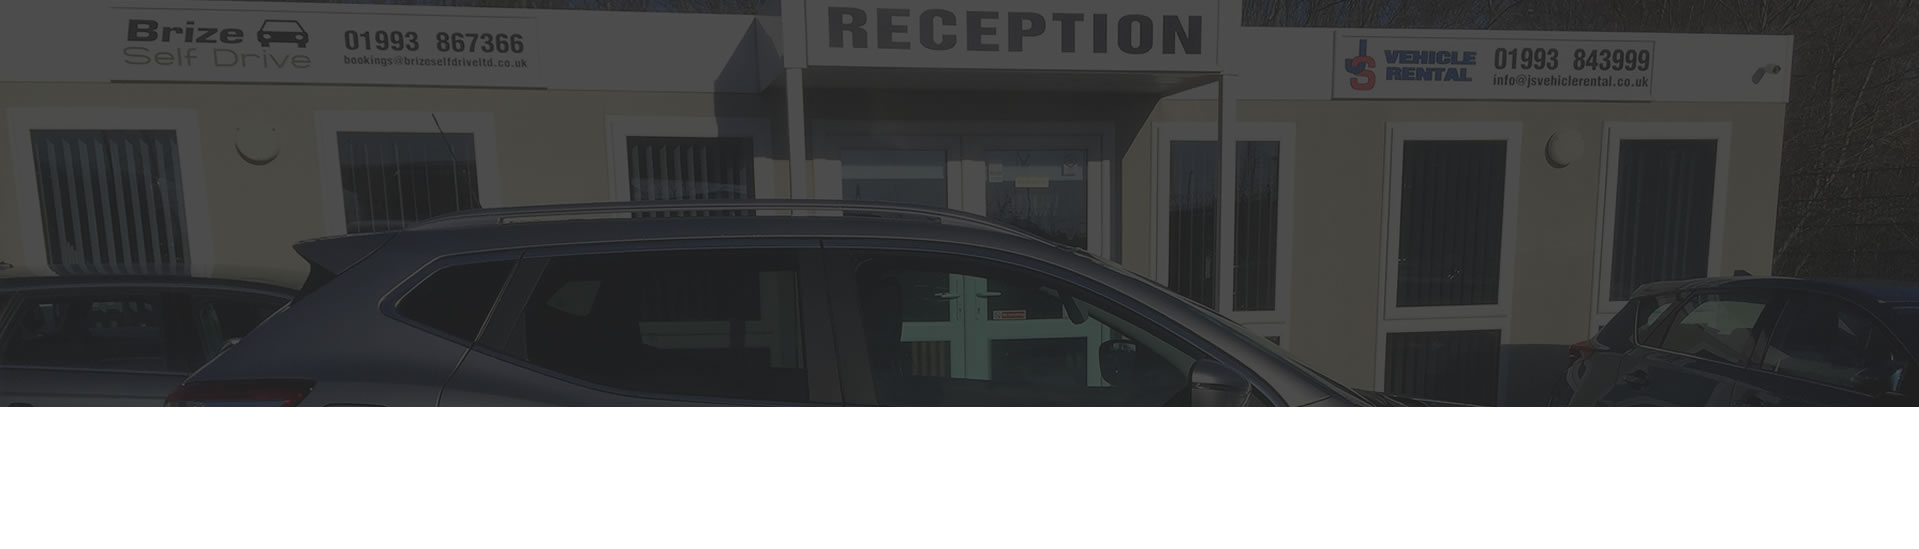 JS Vehicle Rental Ltd.